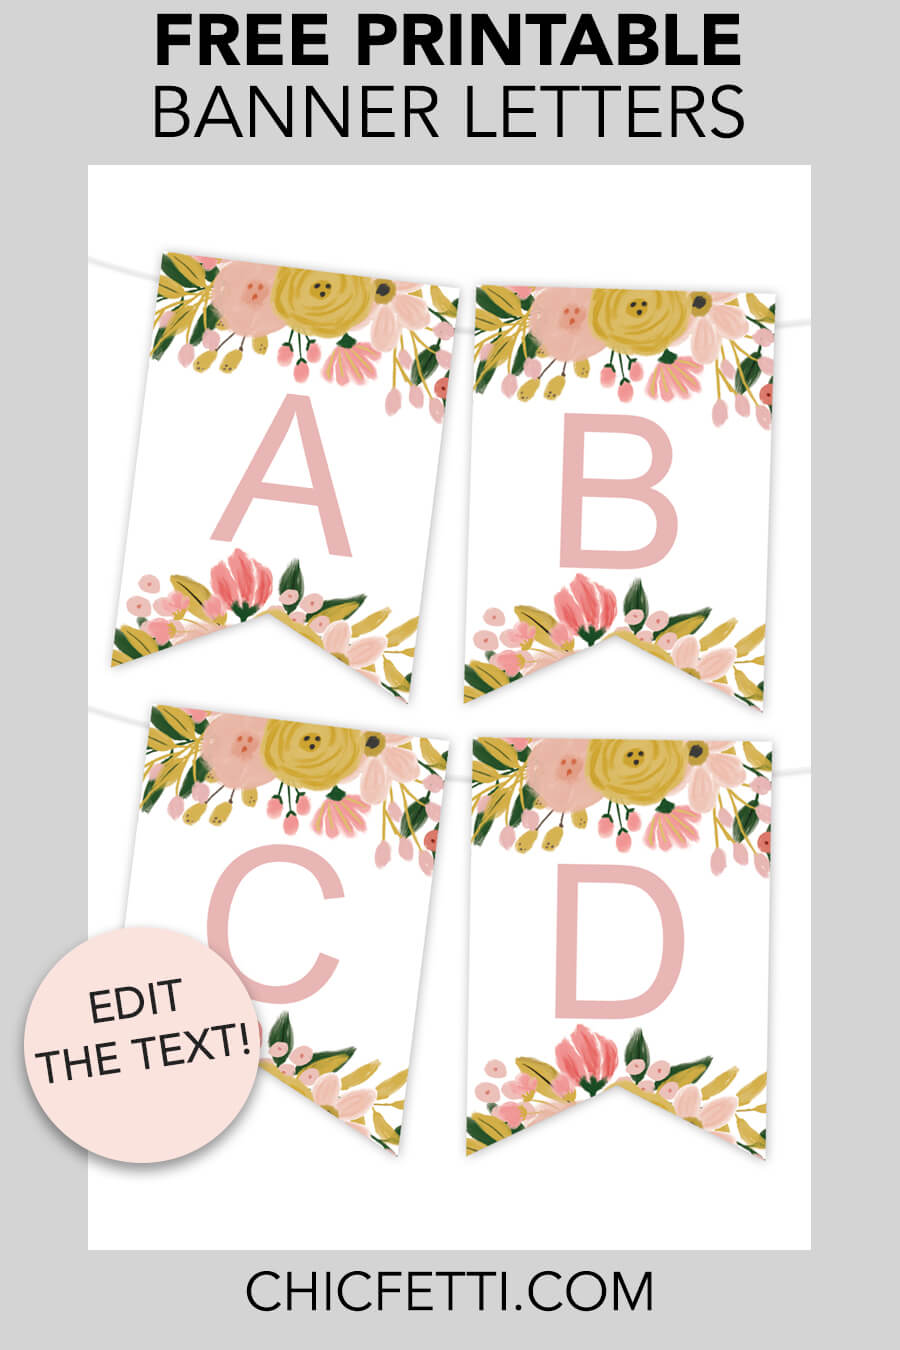 Free Printable Banner - make your own banners with this free printable party banner. This banner is a great party idea for any party! #partyideas #freeprintable #party #banner #bannerletters #printable